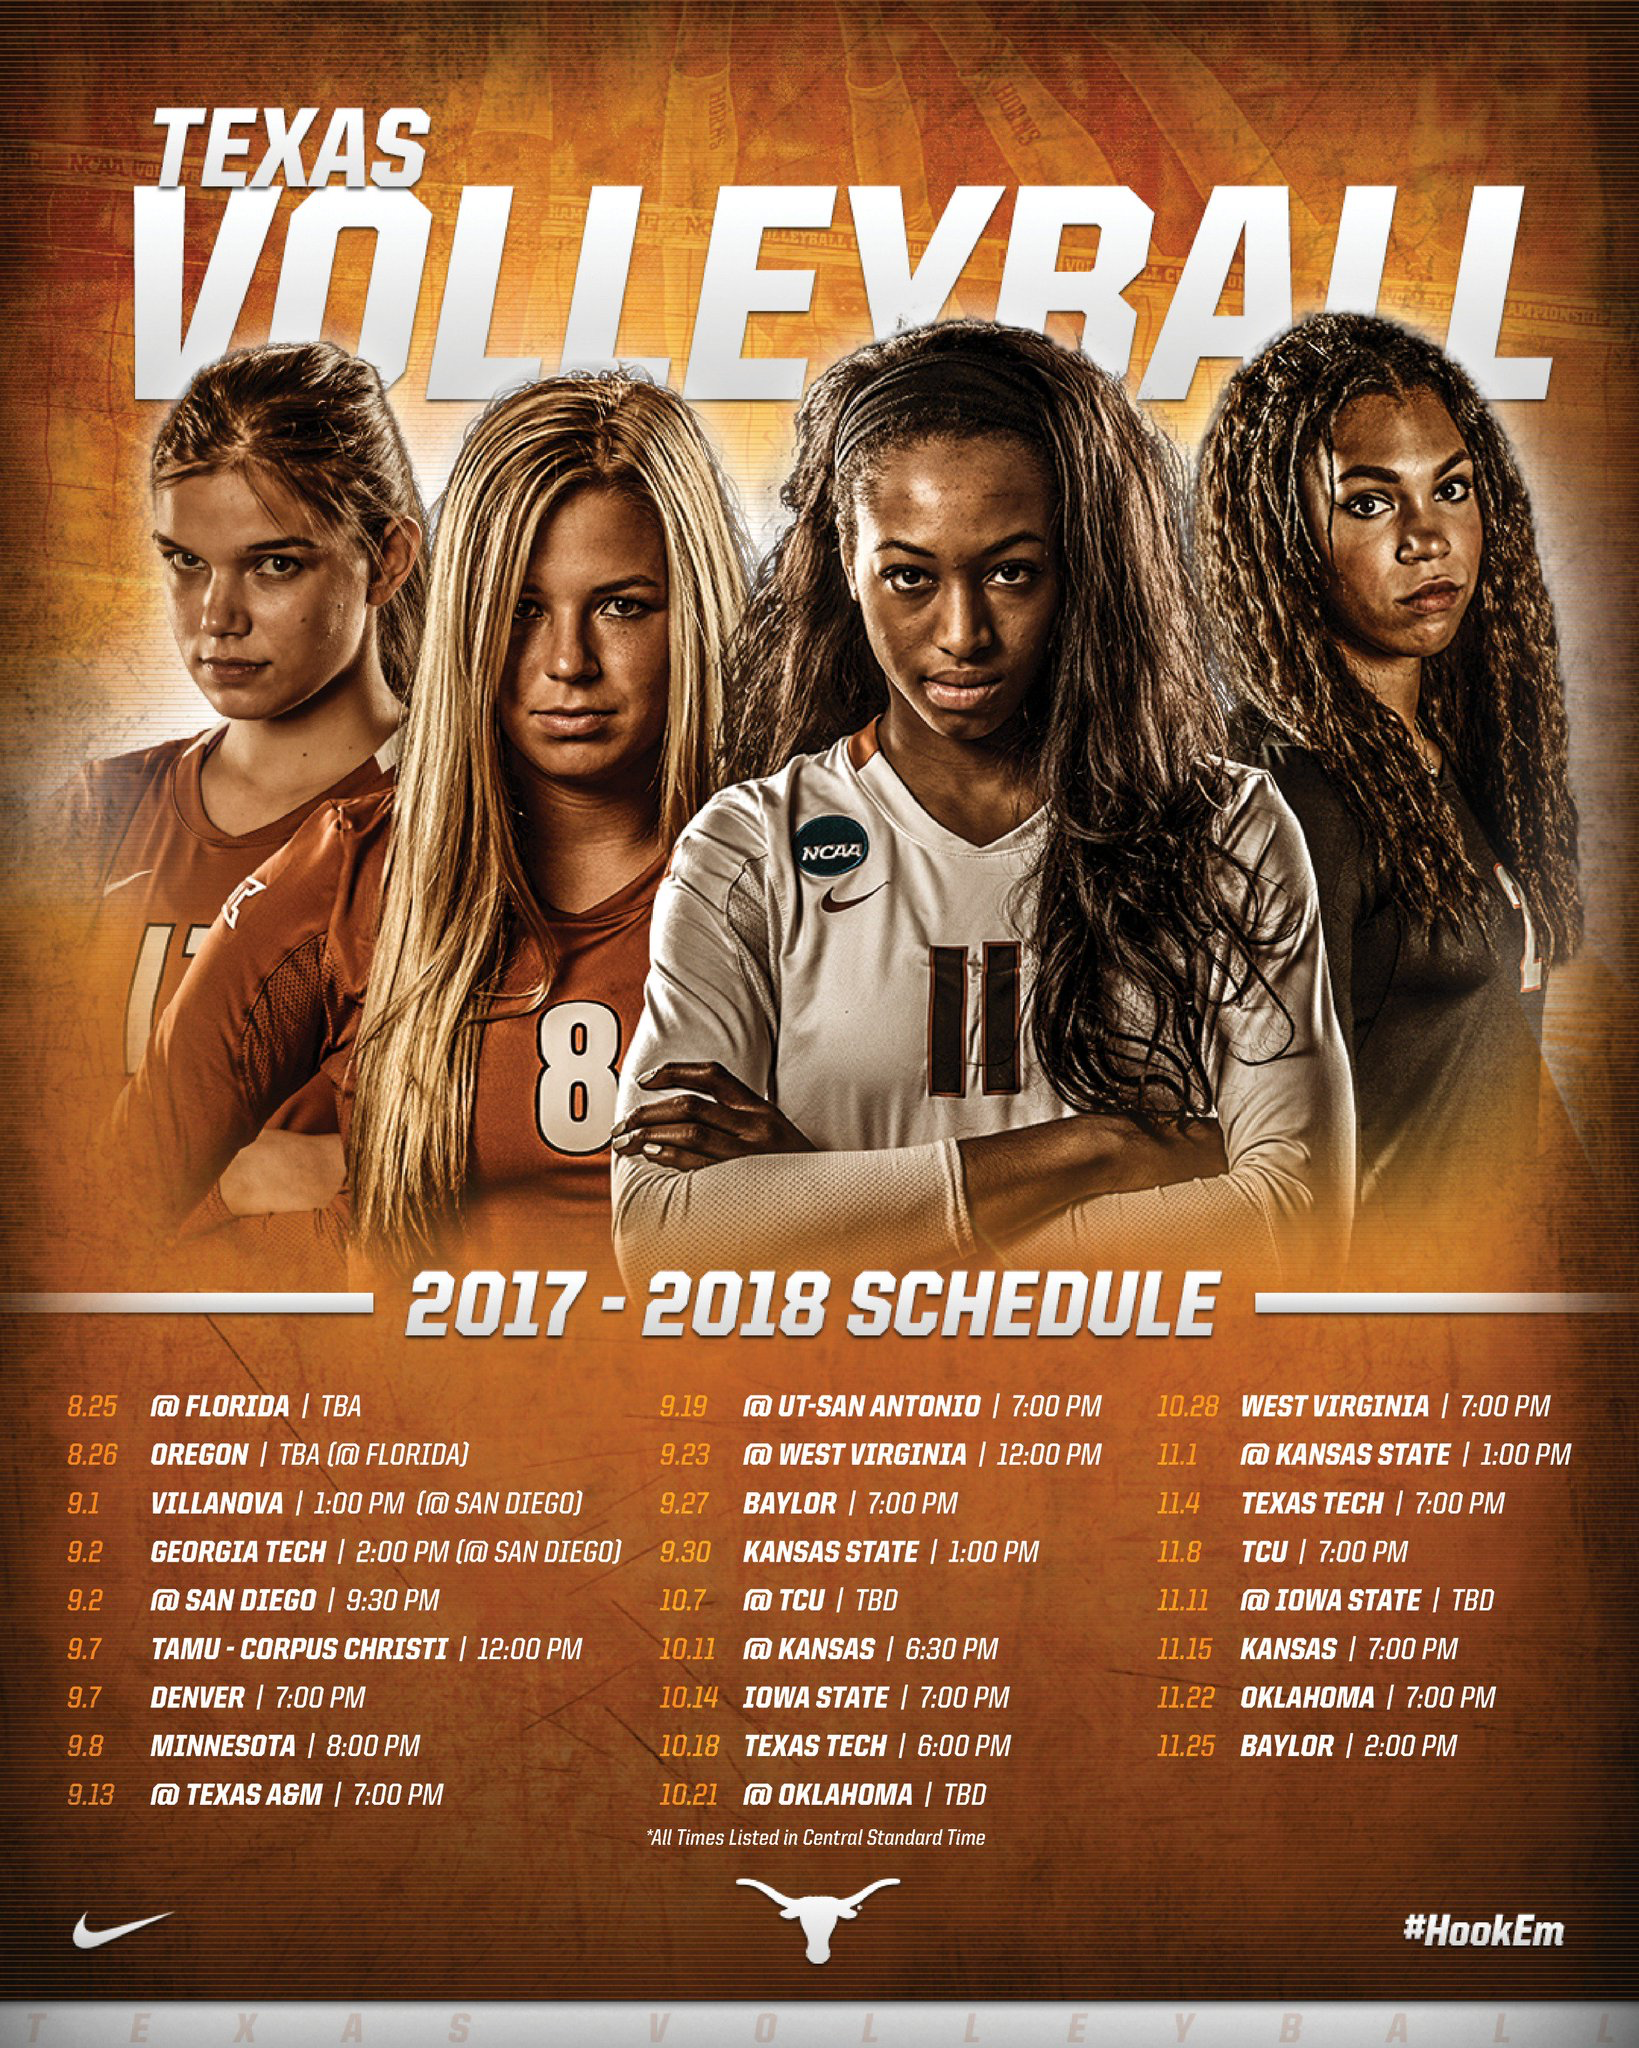 Pin By Josh Neuhart On Sposters Sport Poster Basketball Pictures Volleyball Pictures